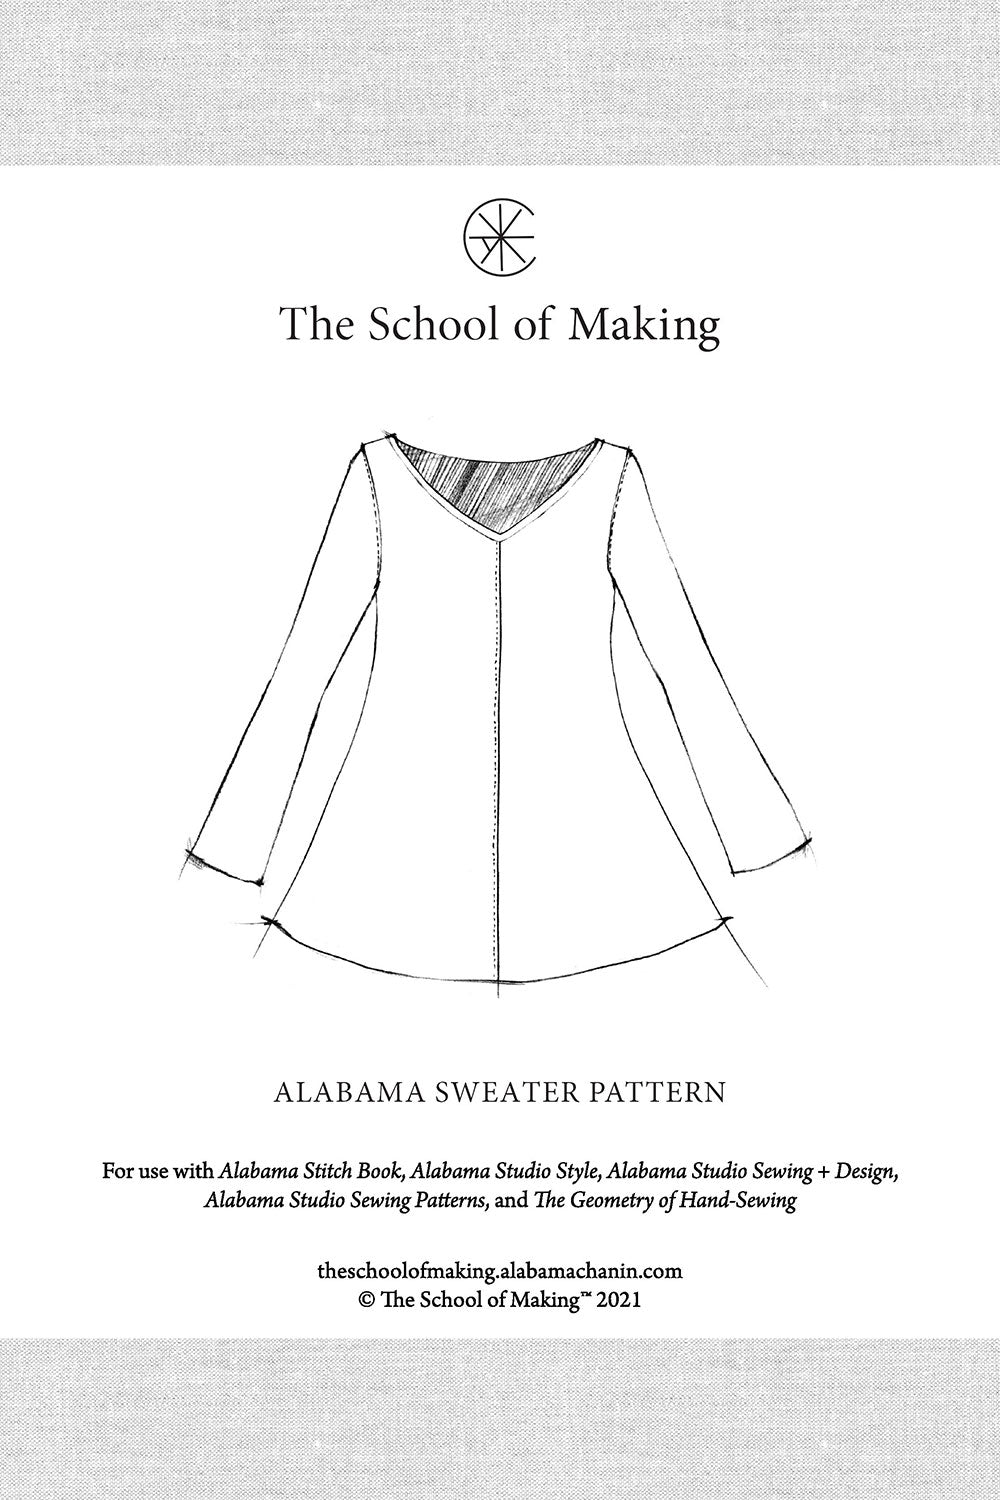 The School of Making Alabama Sweater Pattern Sewing Pattern for Hand-Sewing Clothing